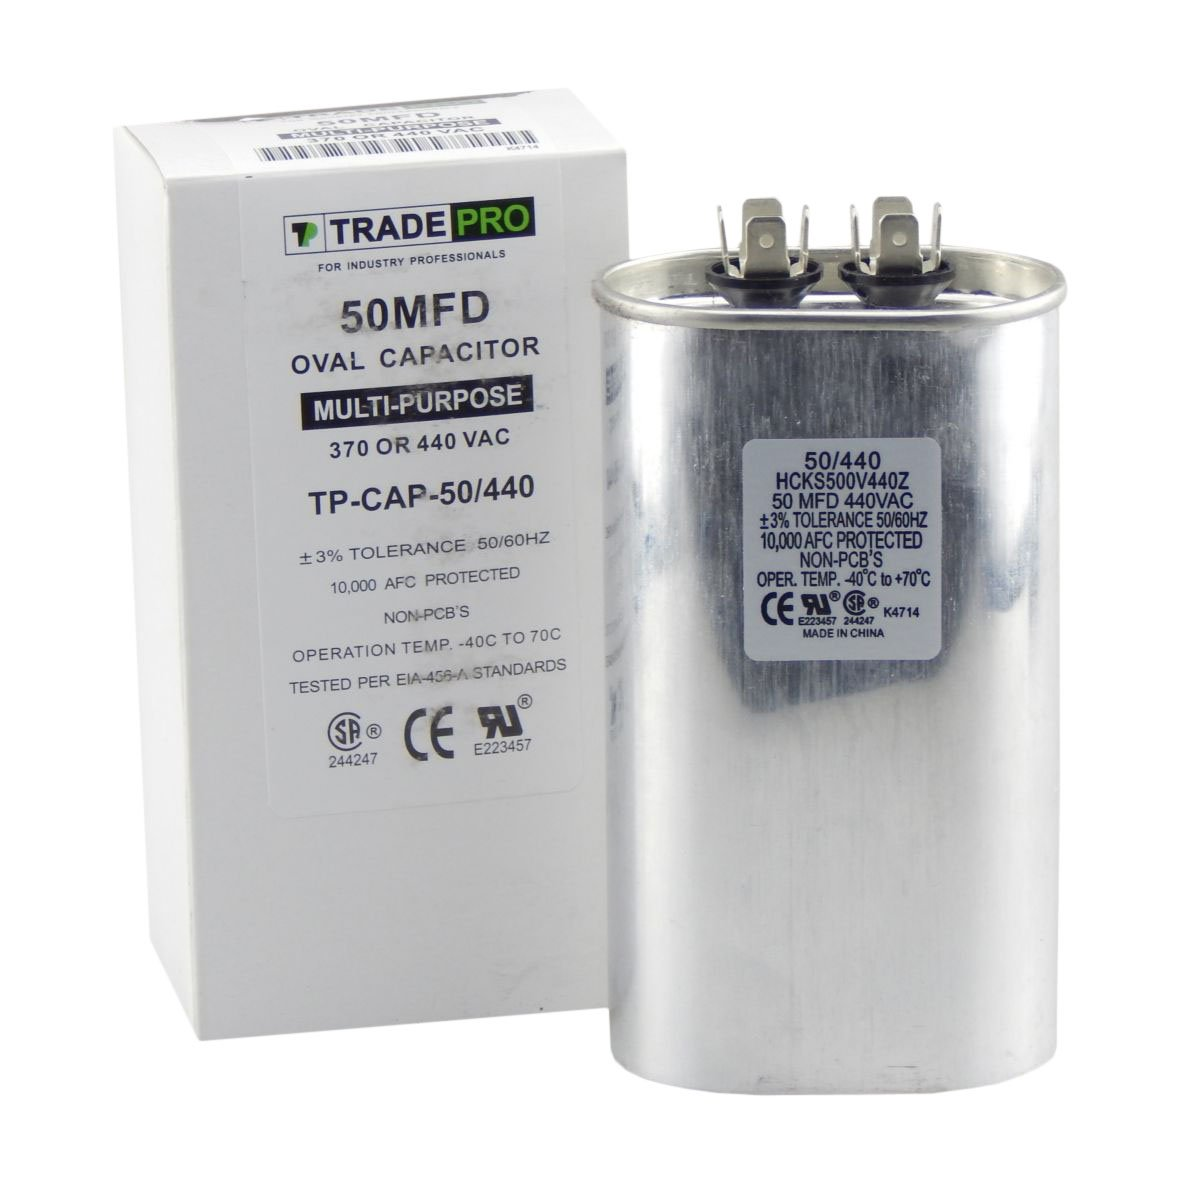 50 mfd Capacitor, Industrial Grade Replacement for Central Air-Conditioners, Heat Pumps, Condenser Fan Motors, and Compressors. Oval Multi-Purpose 370/440 Volt - by Trade Pro by TradePro